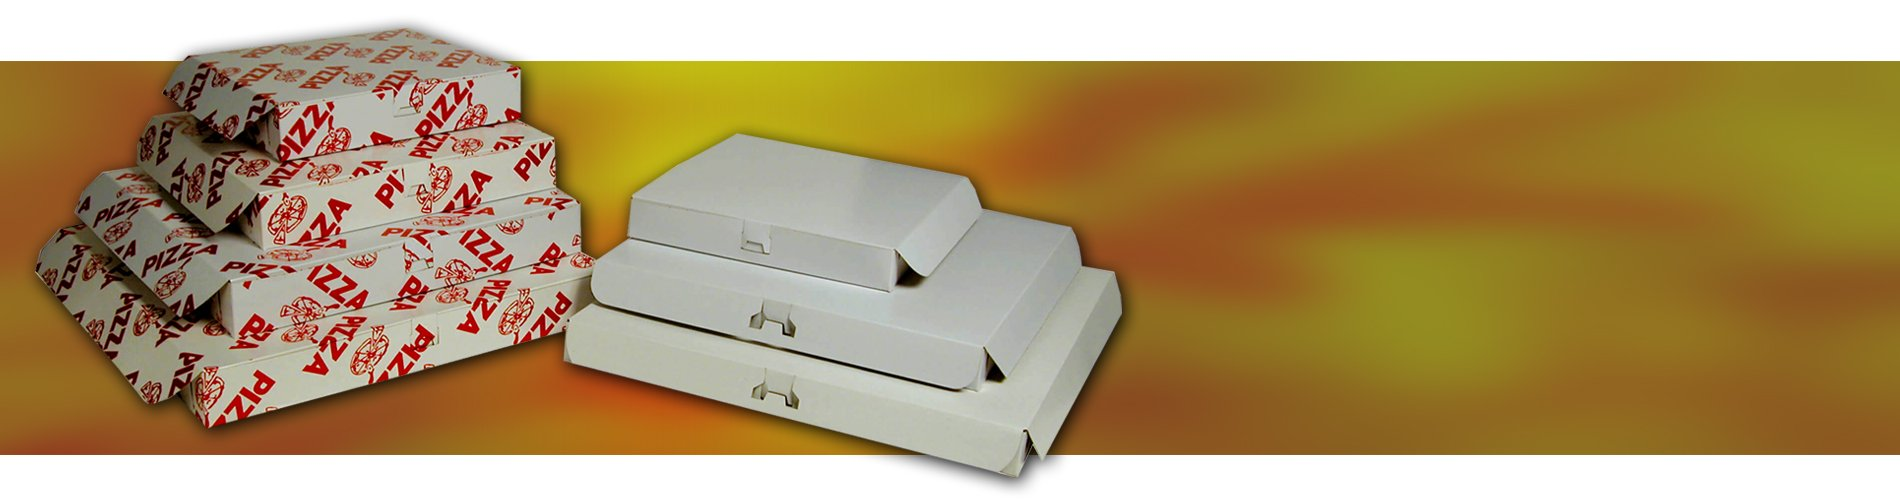 bespoke-branded-pizza-boxes-packaging